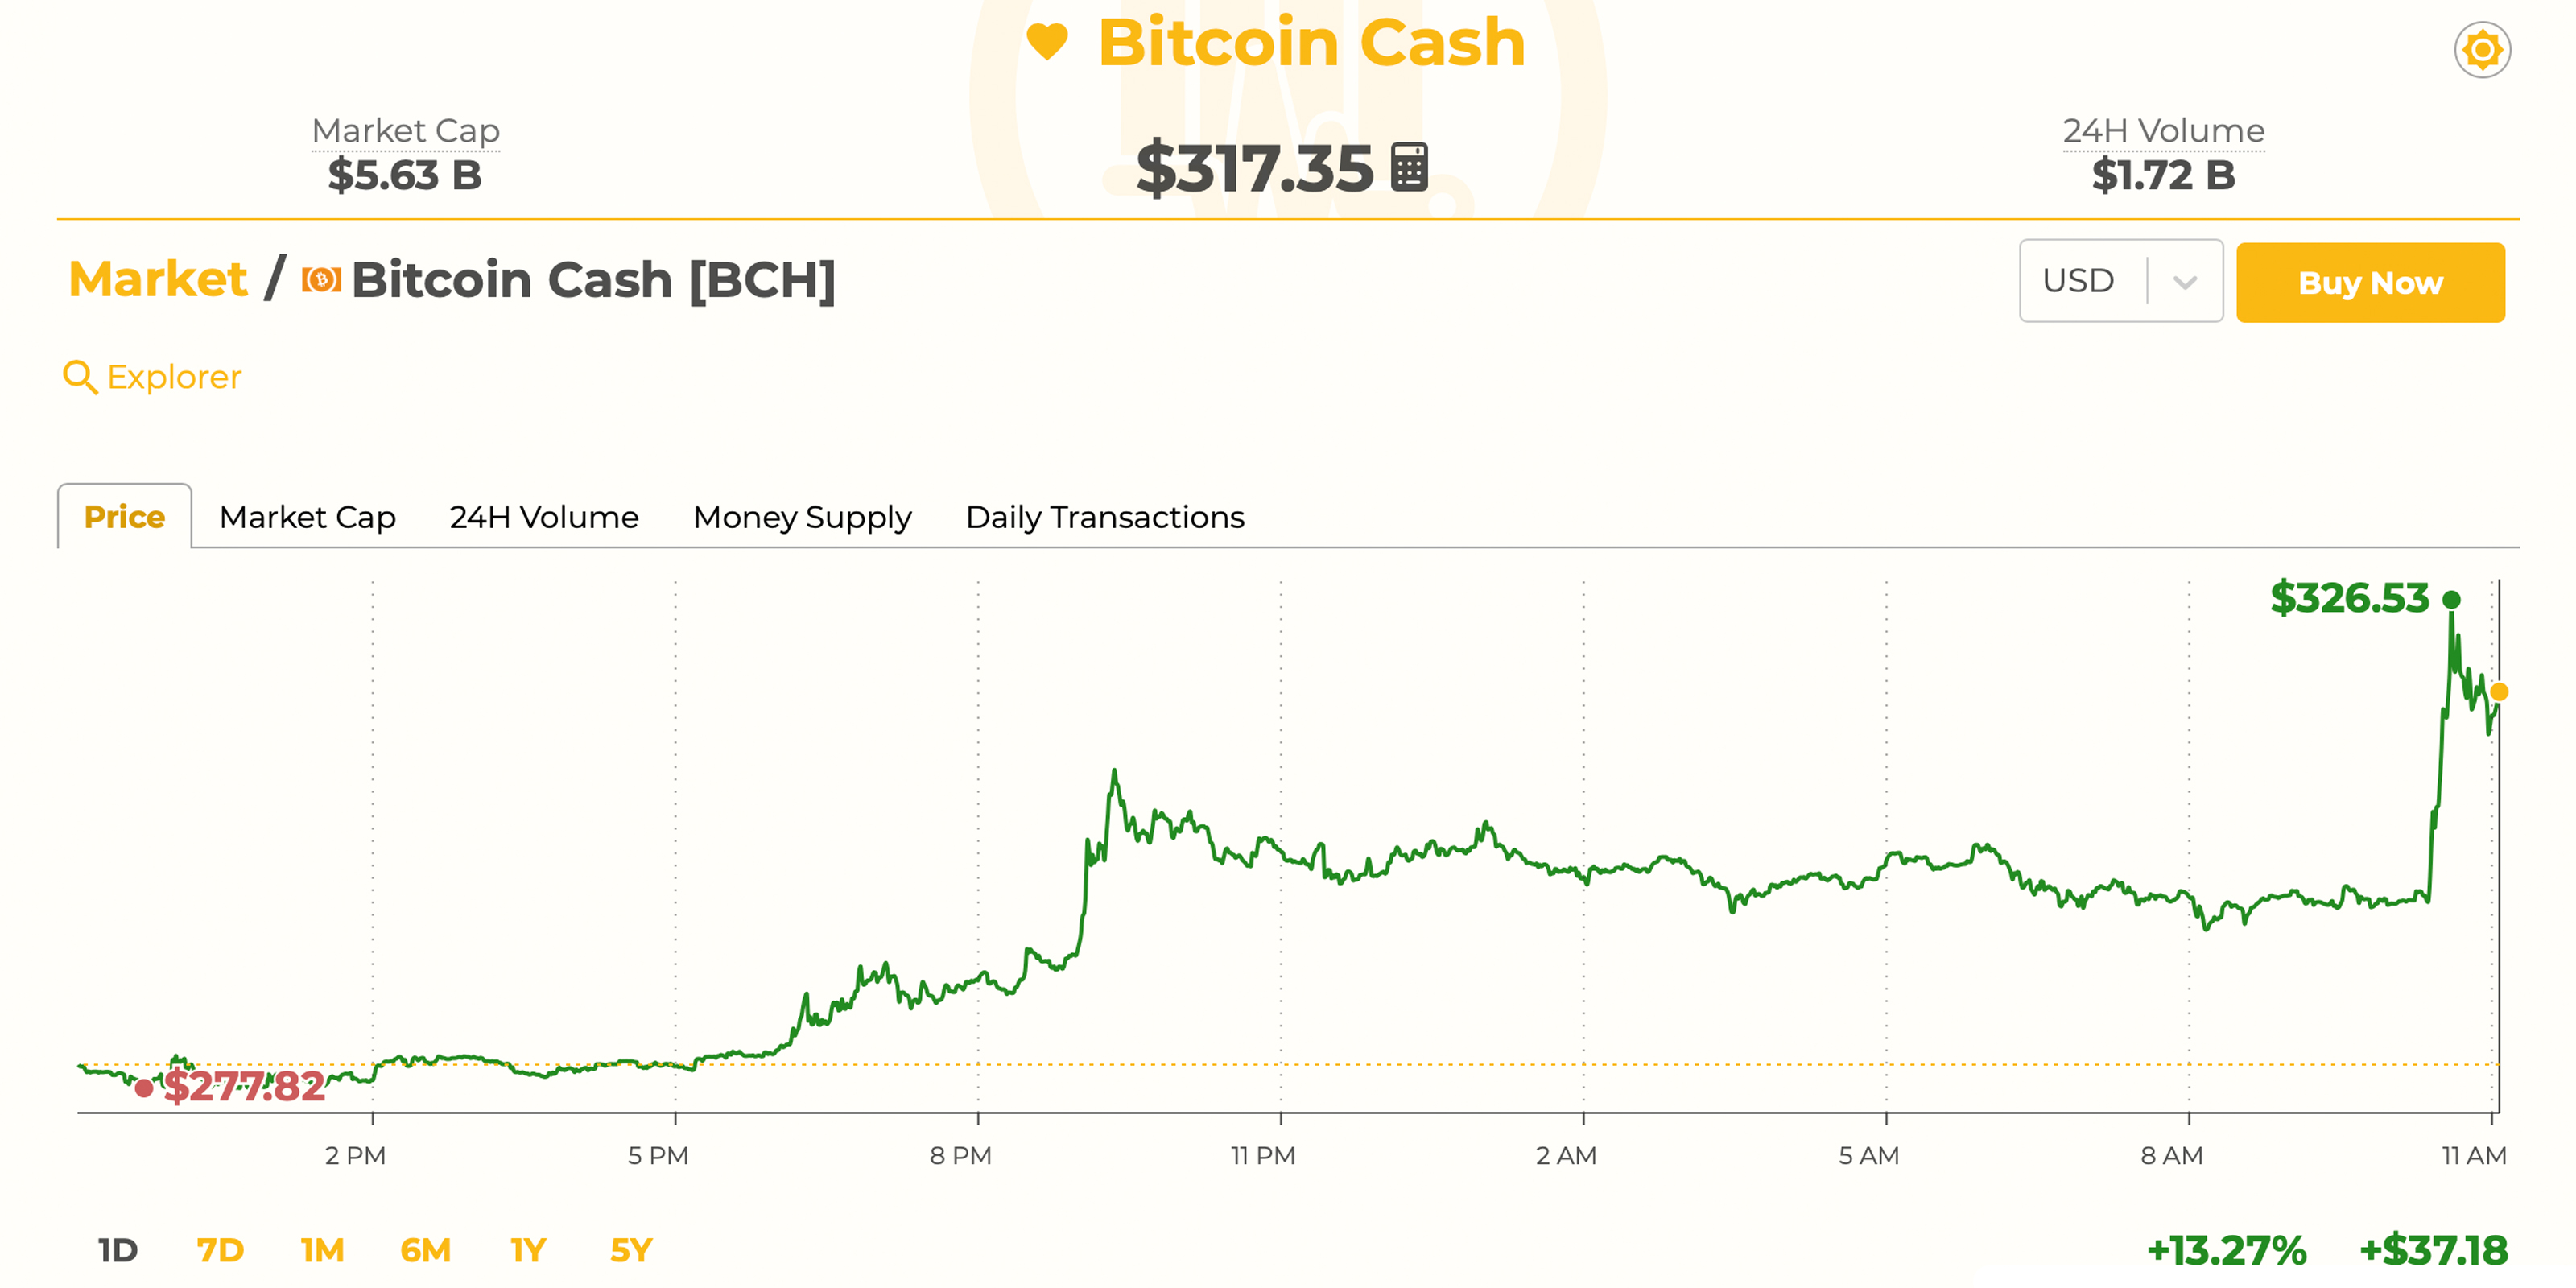 Markets Update: Bitcoin Cash Leads the Pack Again as Price Sees Double Digit Gains